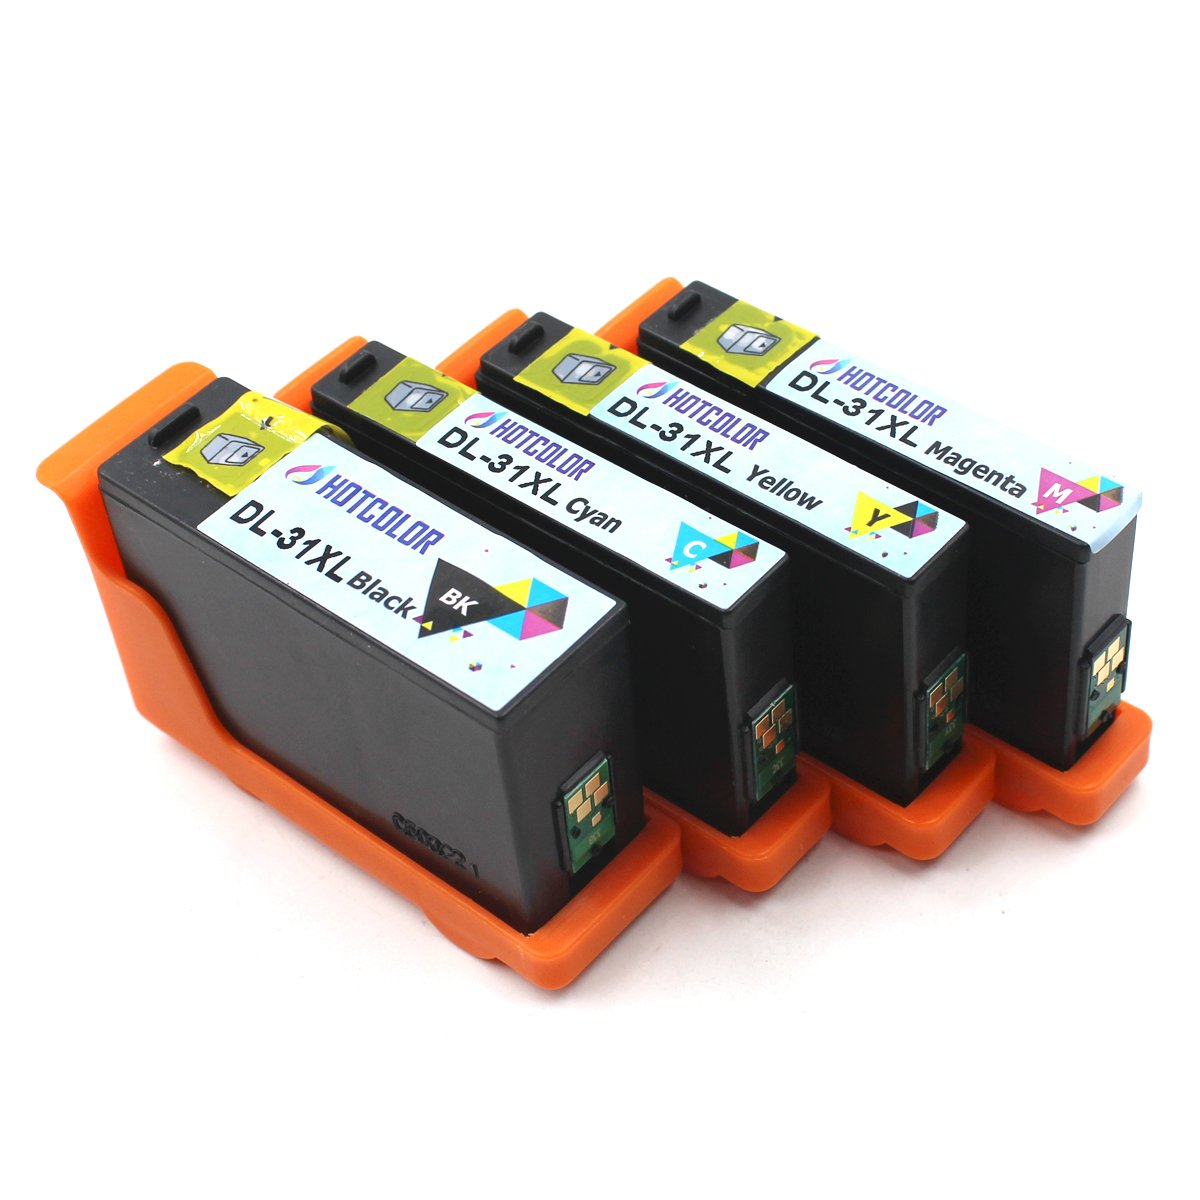 Compatible Dell Serie 31 32 33 34 High Yield Ink Cartridges For Dell V525 V725w